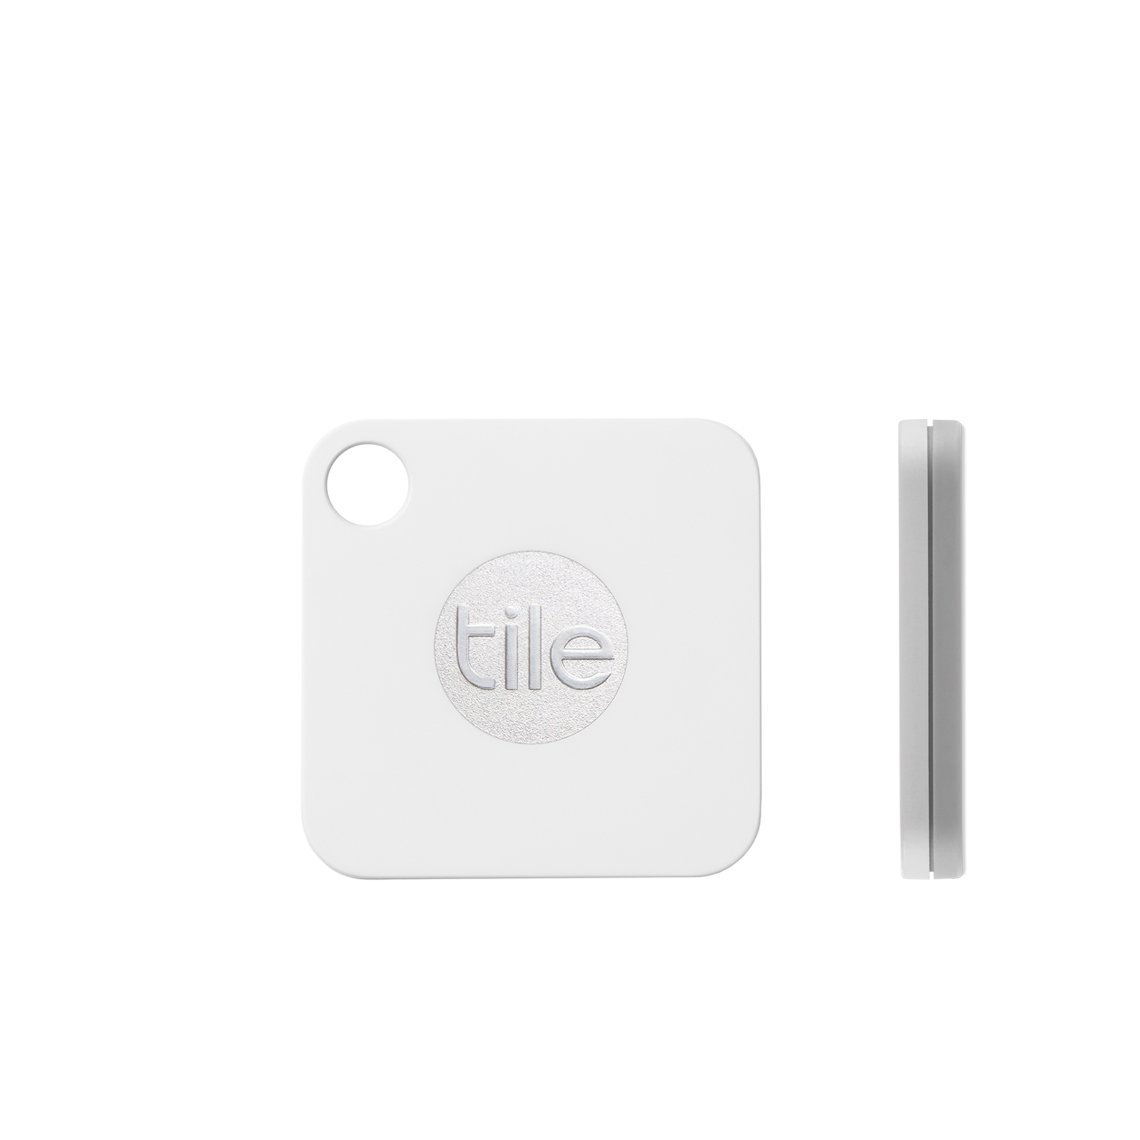 tile mate key finder phone finder anything finder amazon co uk